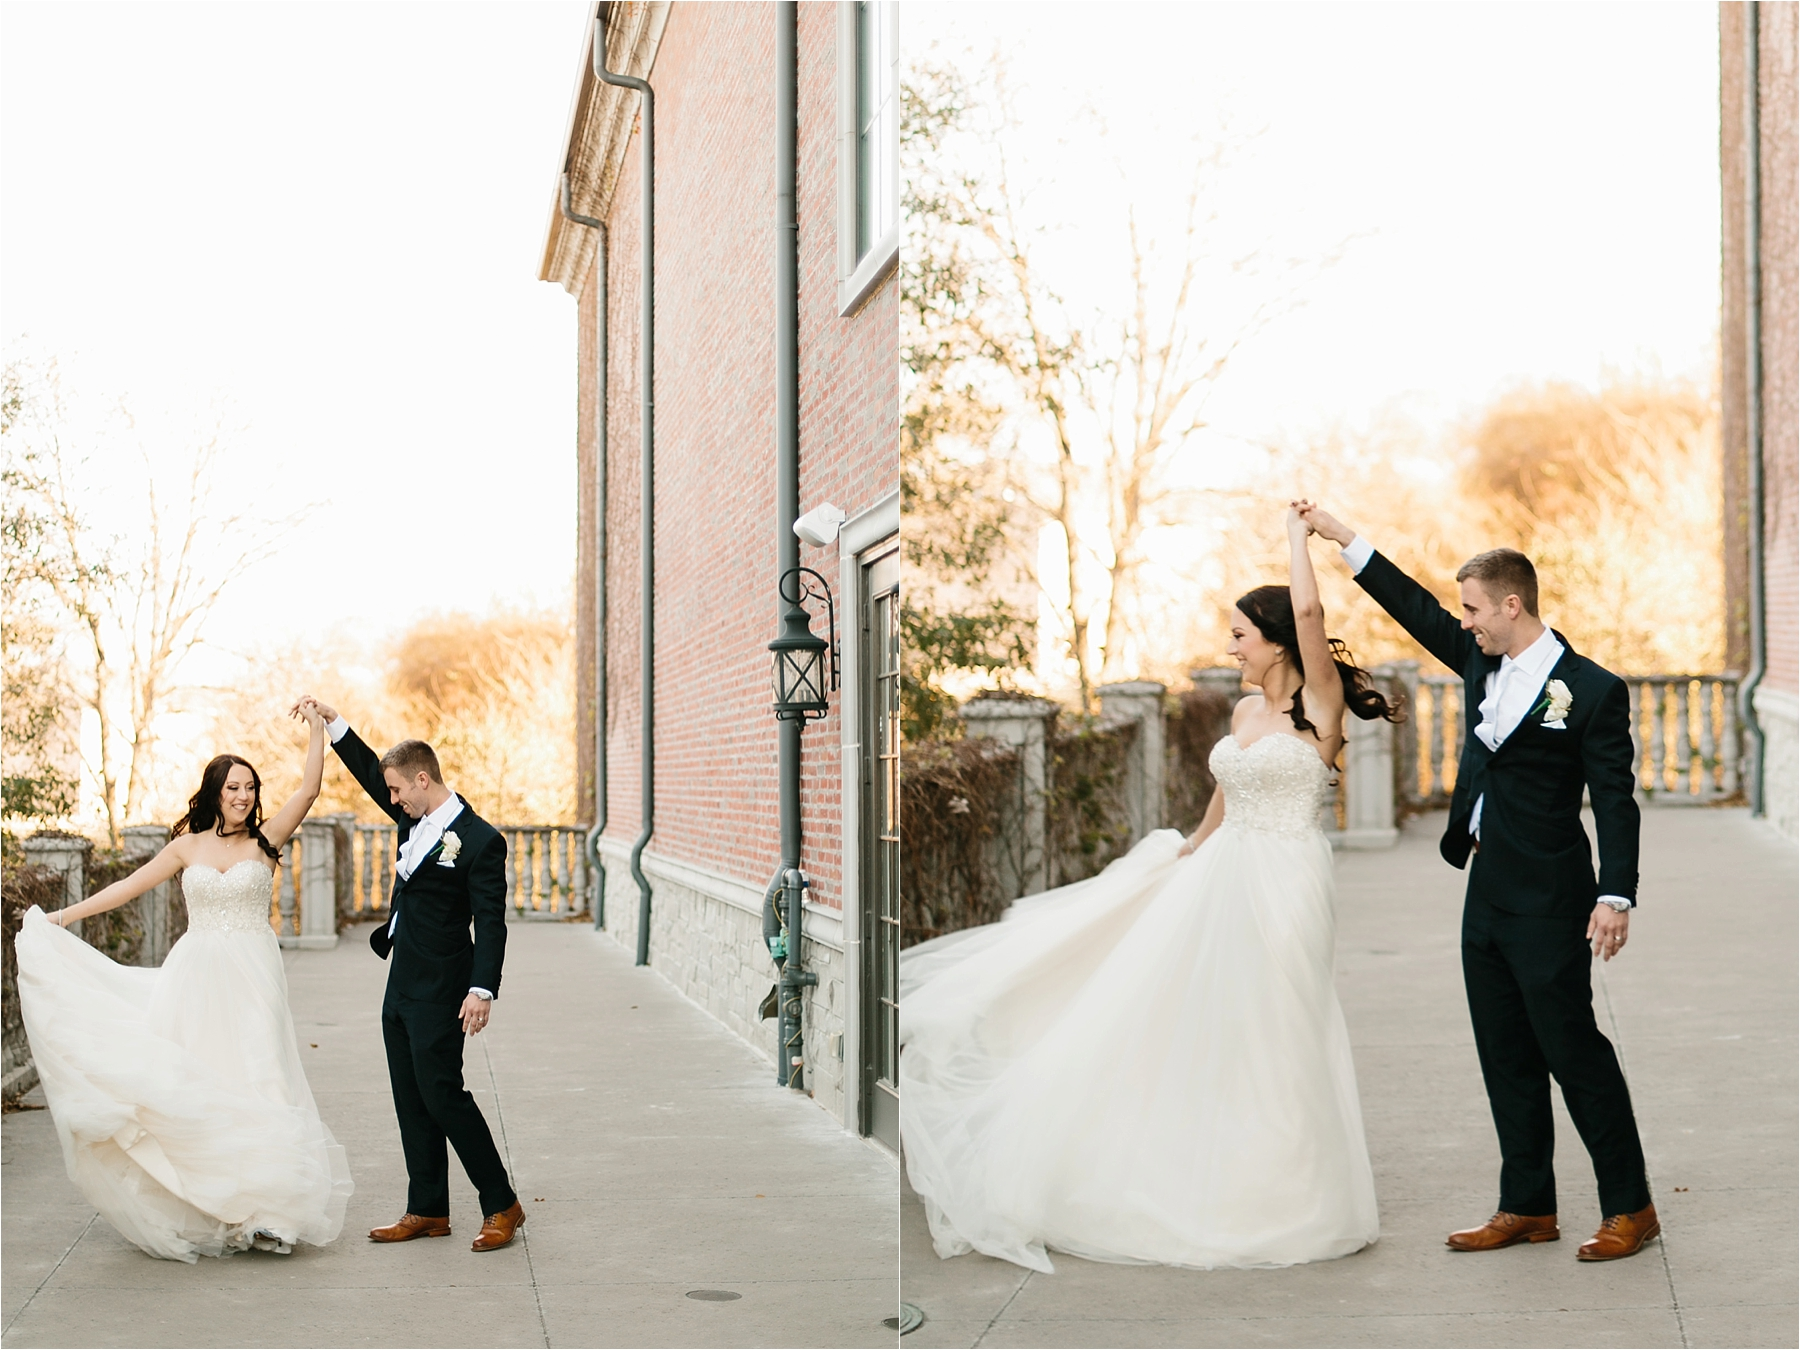 Chrissy + Zach __ The Windsor at Hebron Park Wedding by North Texas Wedding Photographer _ Rachel Meagan Photography __060